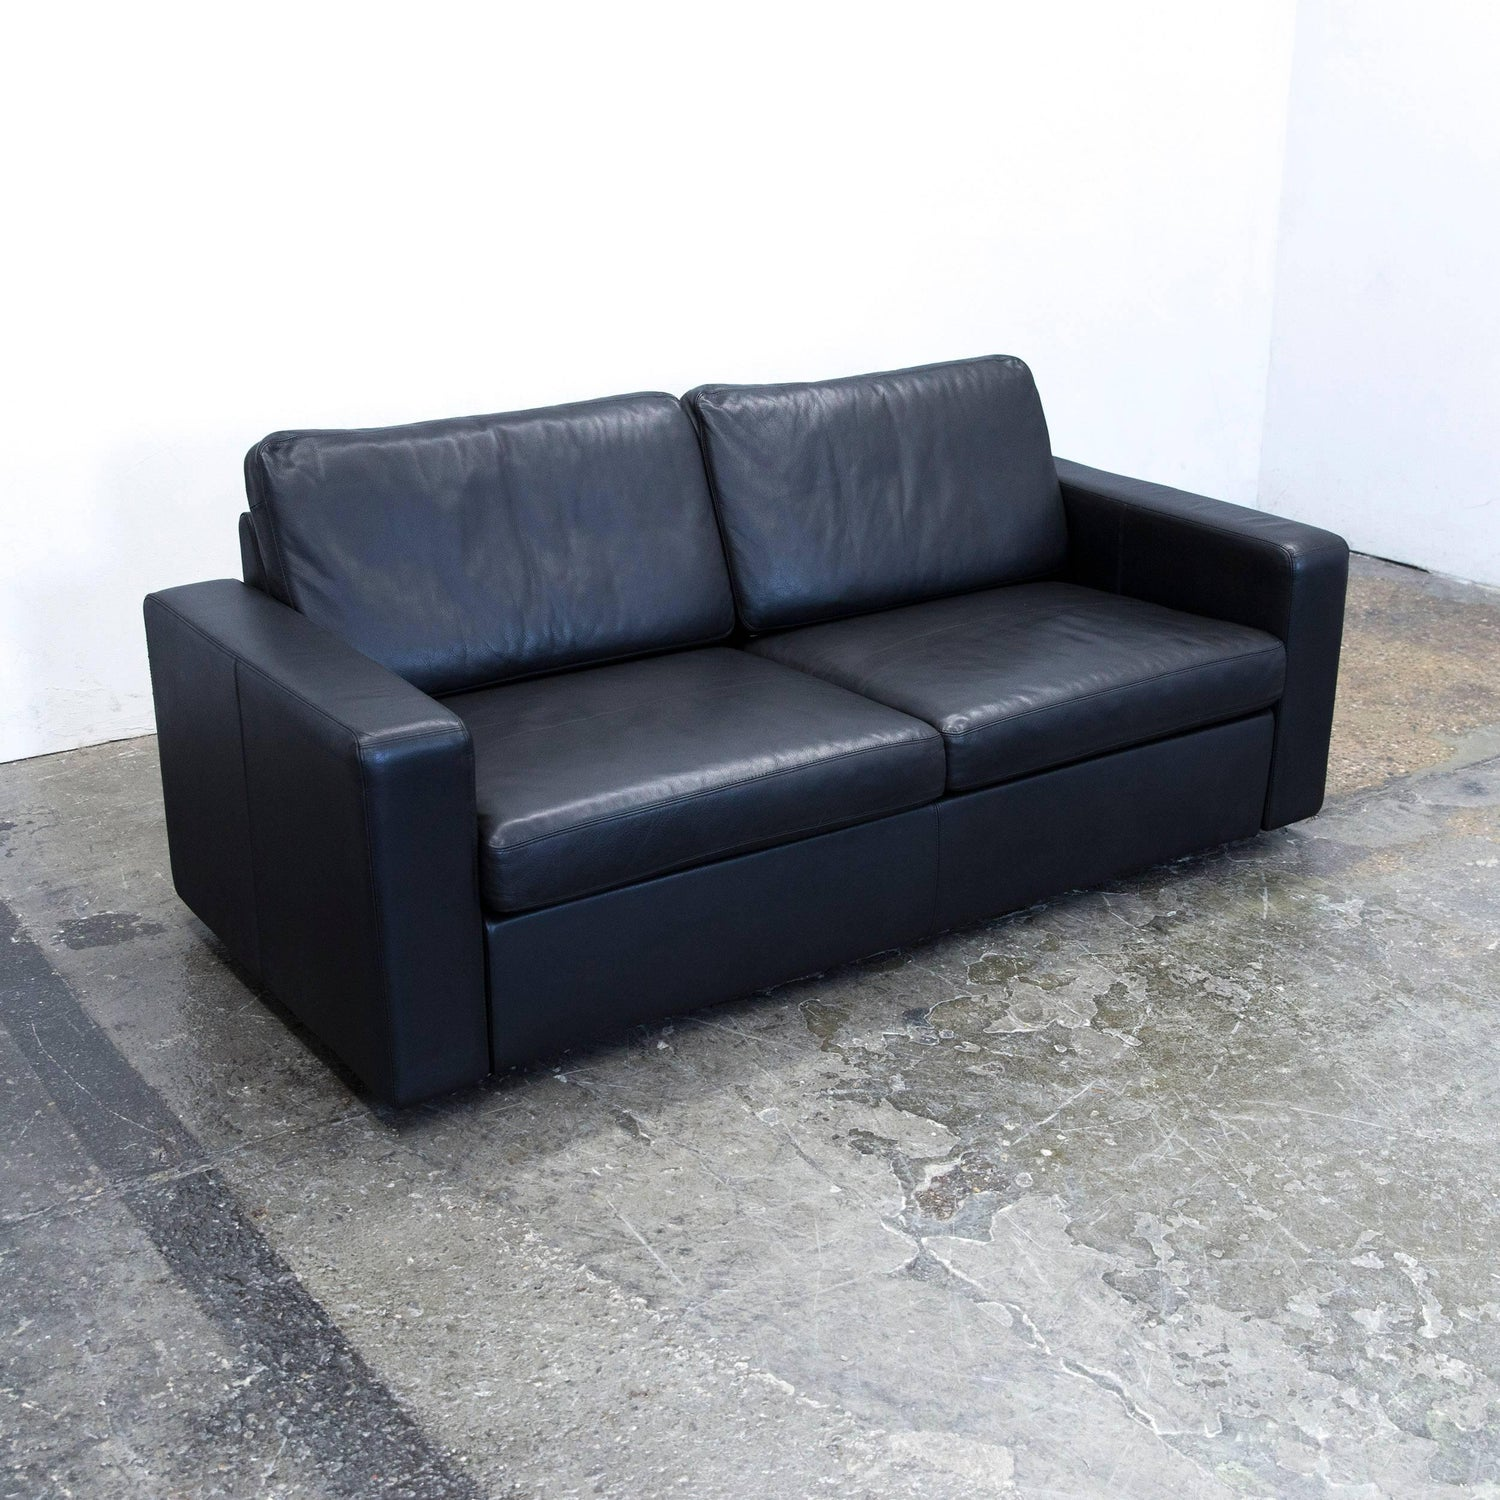 Cor Schlafsofa cor conseta designer sofa leather black sleepsofa three seat